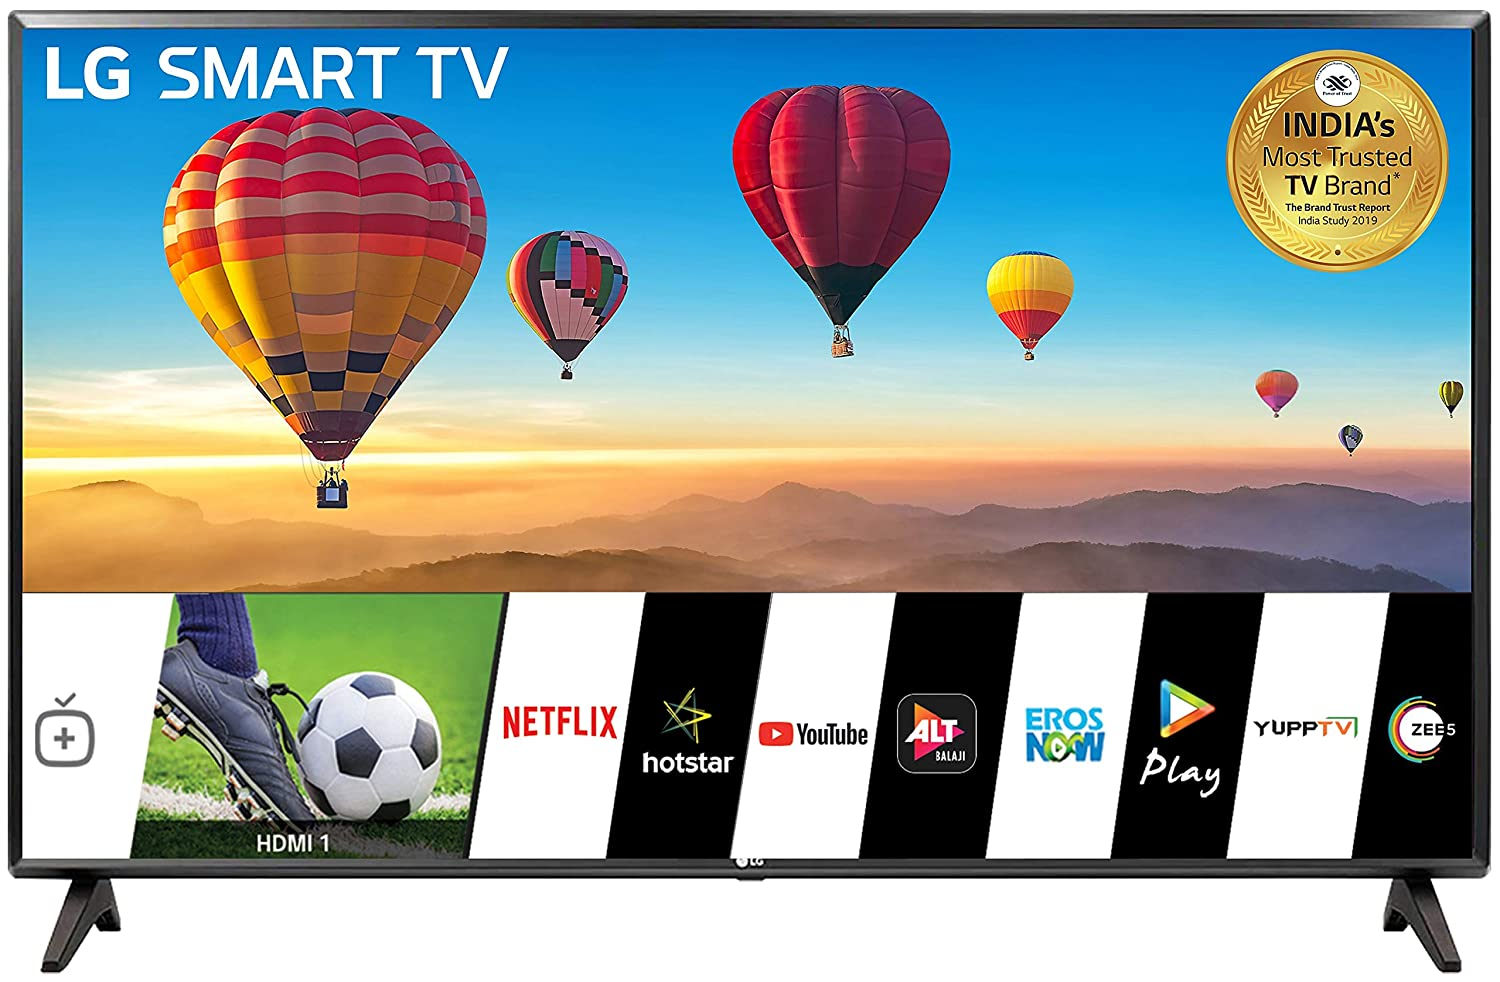 lg-hd-ready-smart-led-tv-with-ips-display-32-inches